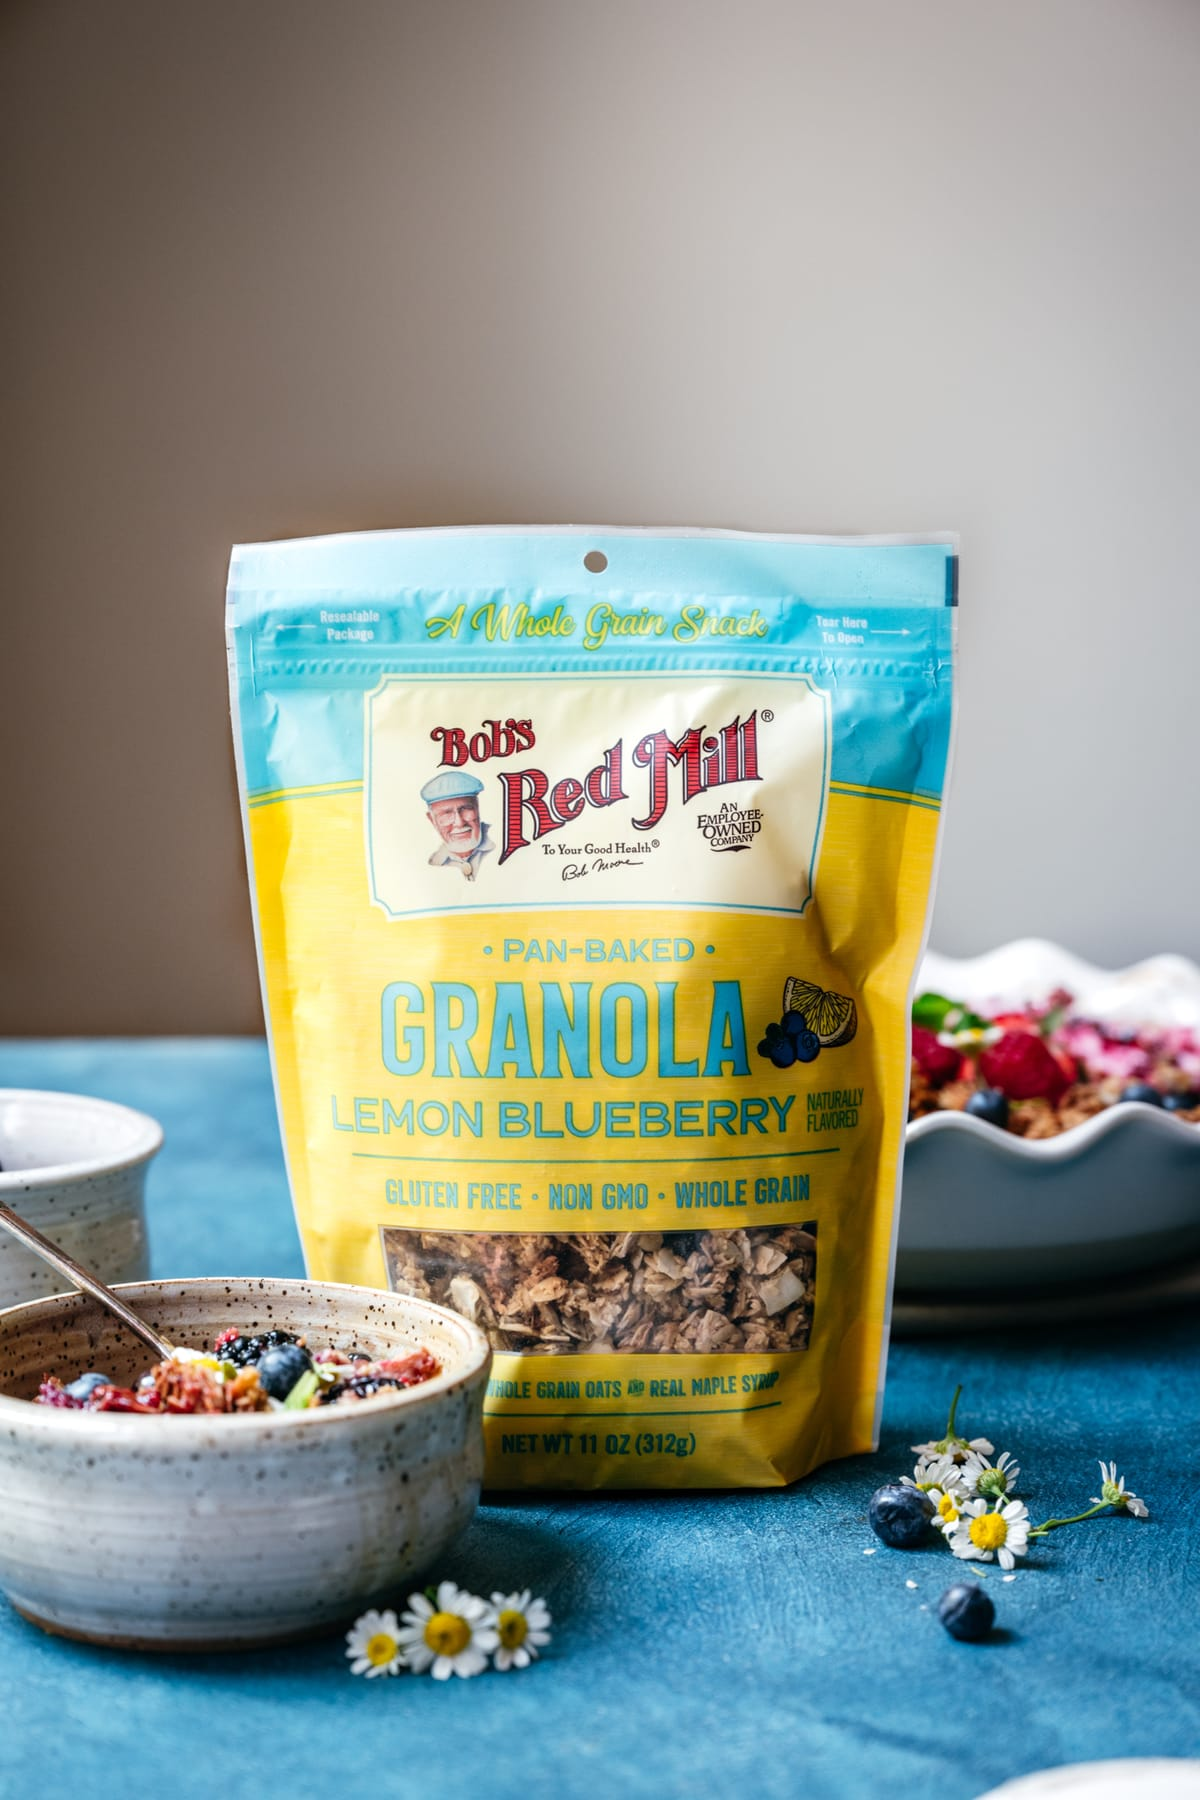 side view of Bob's Red Mill Lemon Blueberry Granola